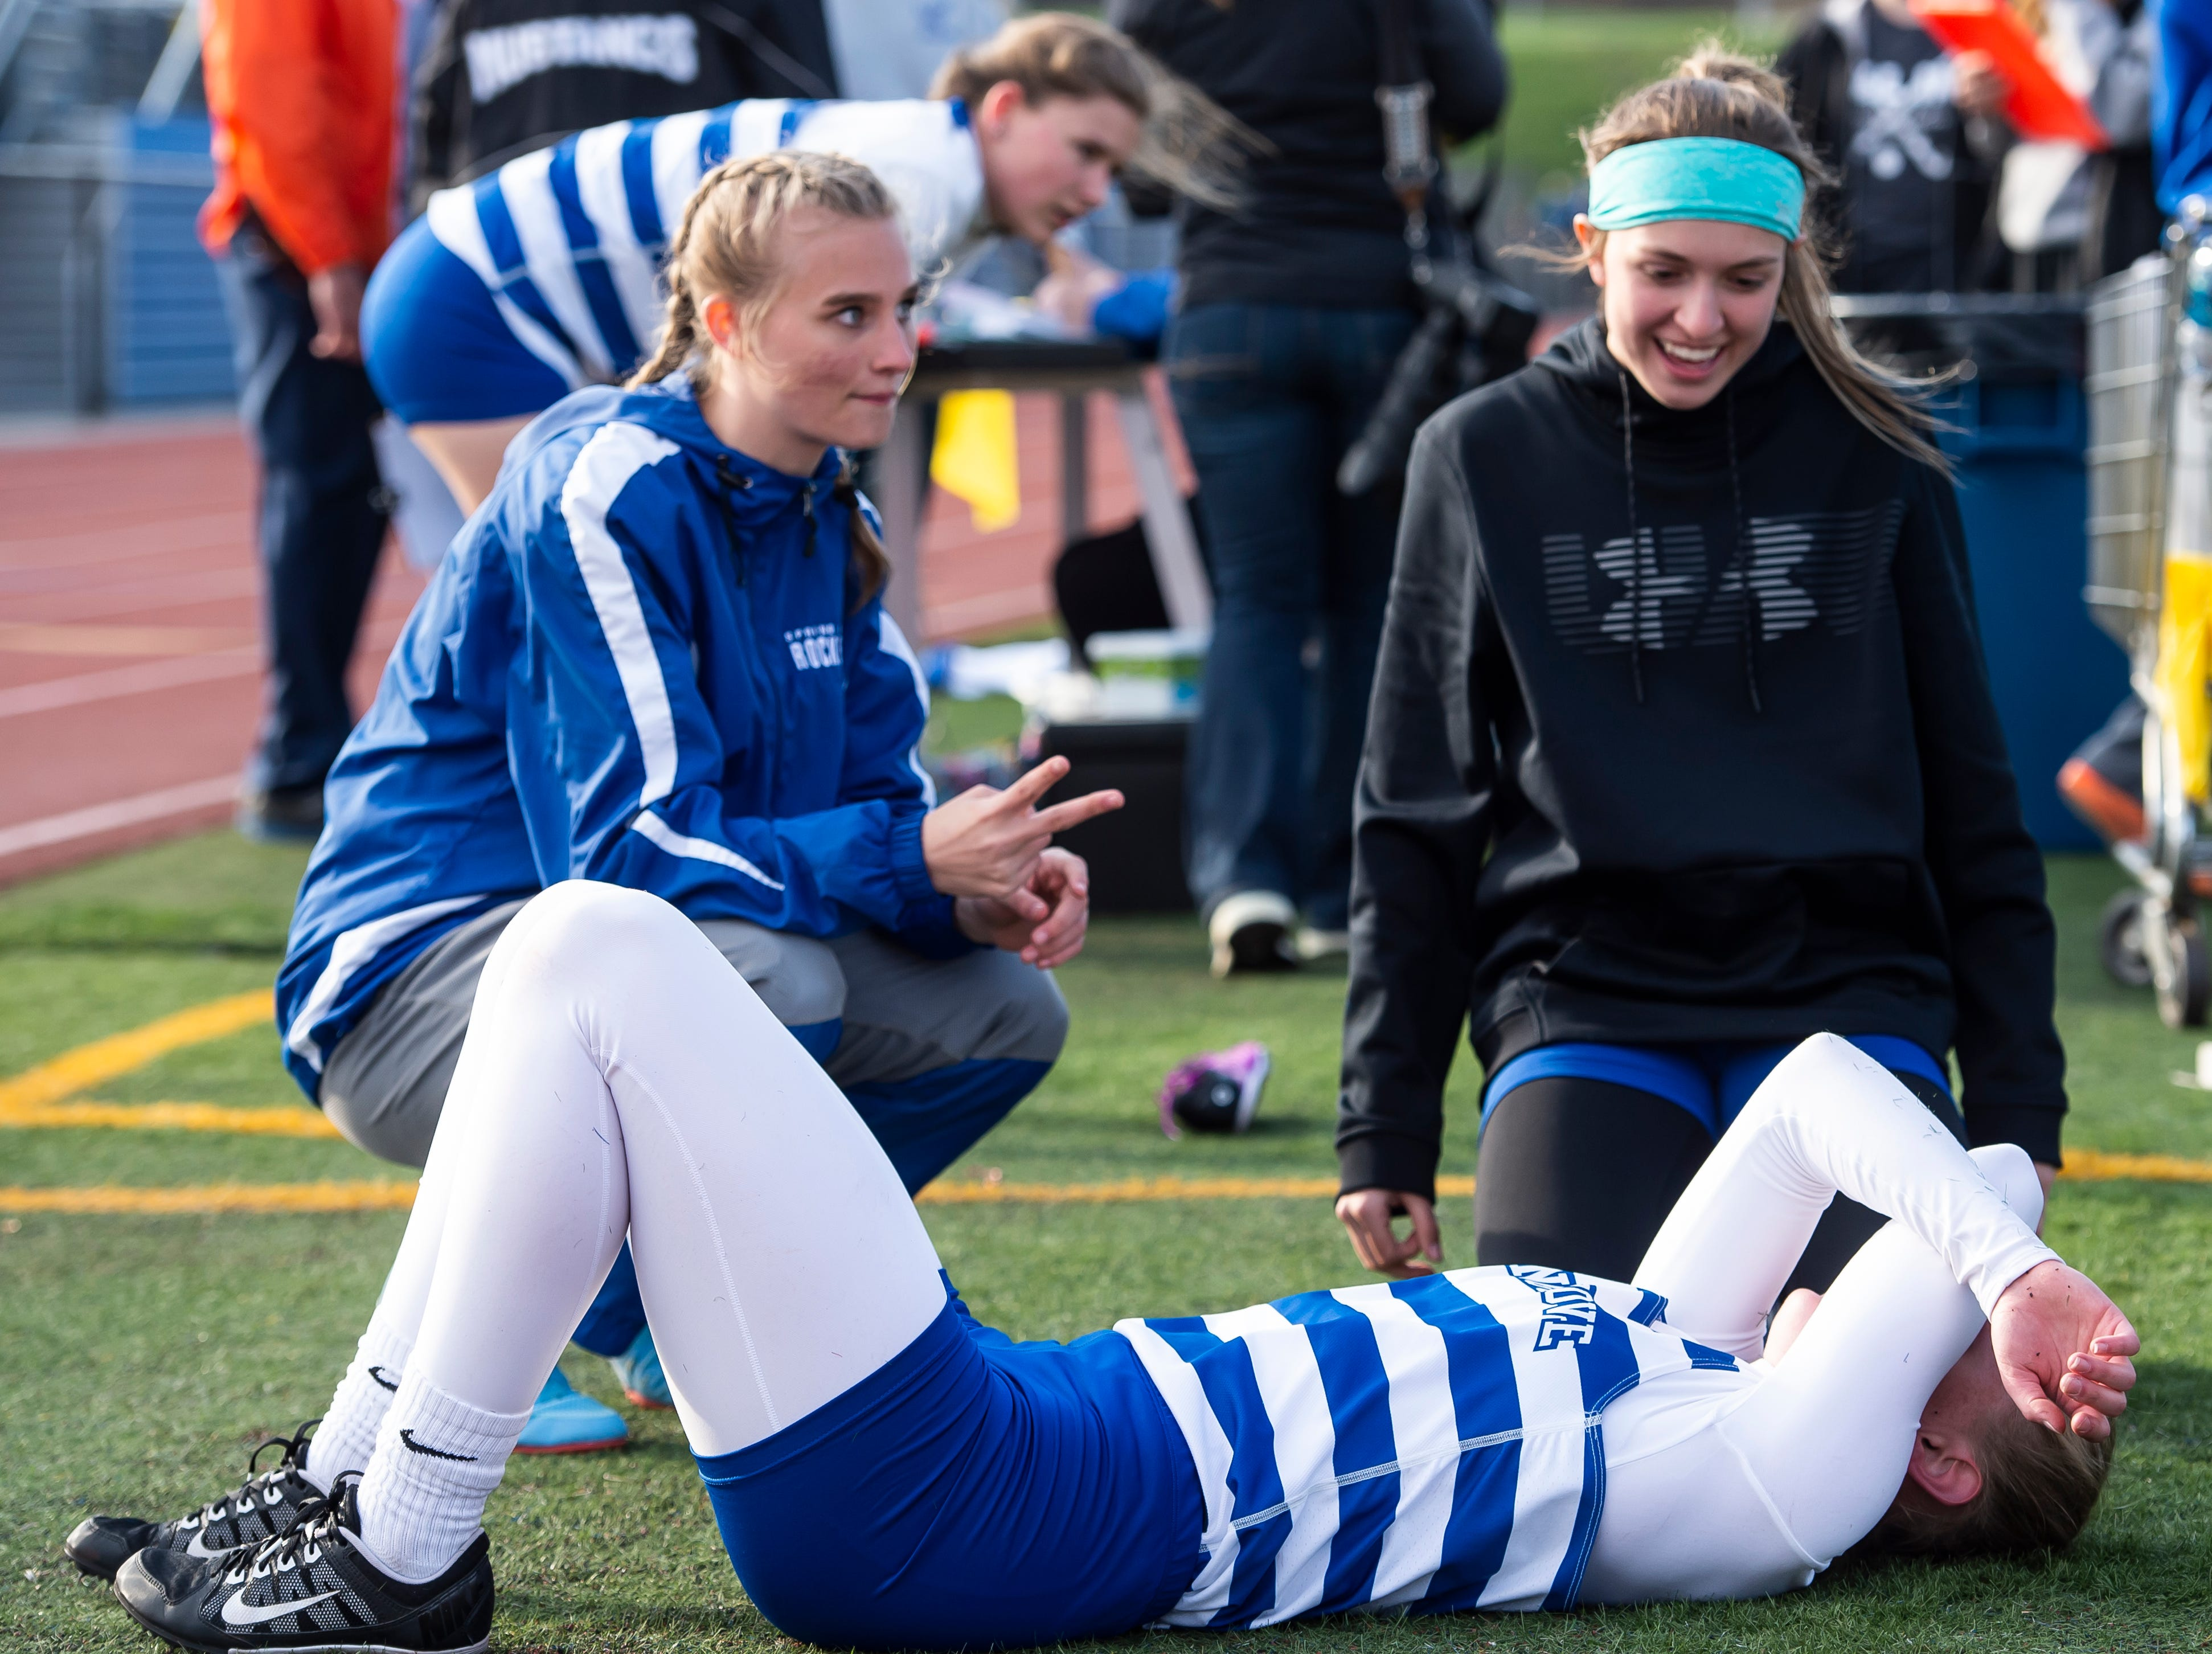 A Spring Grove athlete rests on the turf after competing in the 800m during a track and field meet on Thursday, April 11, 2019.